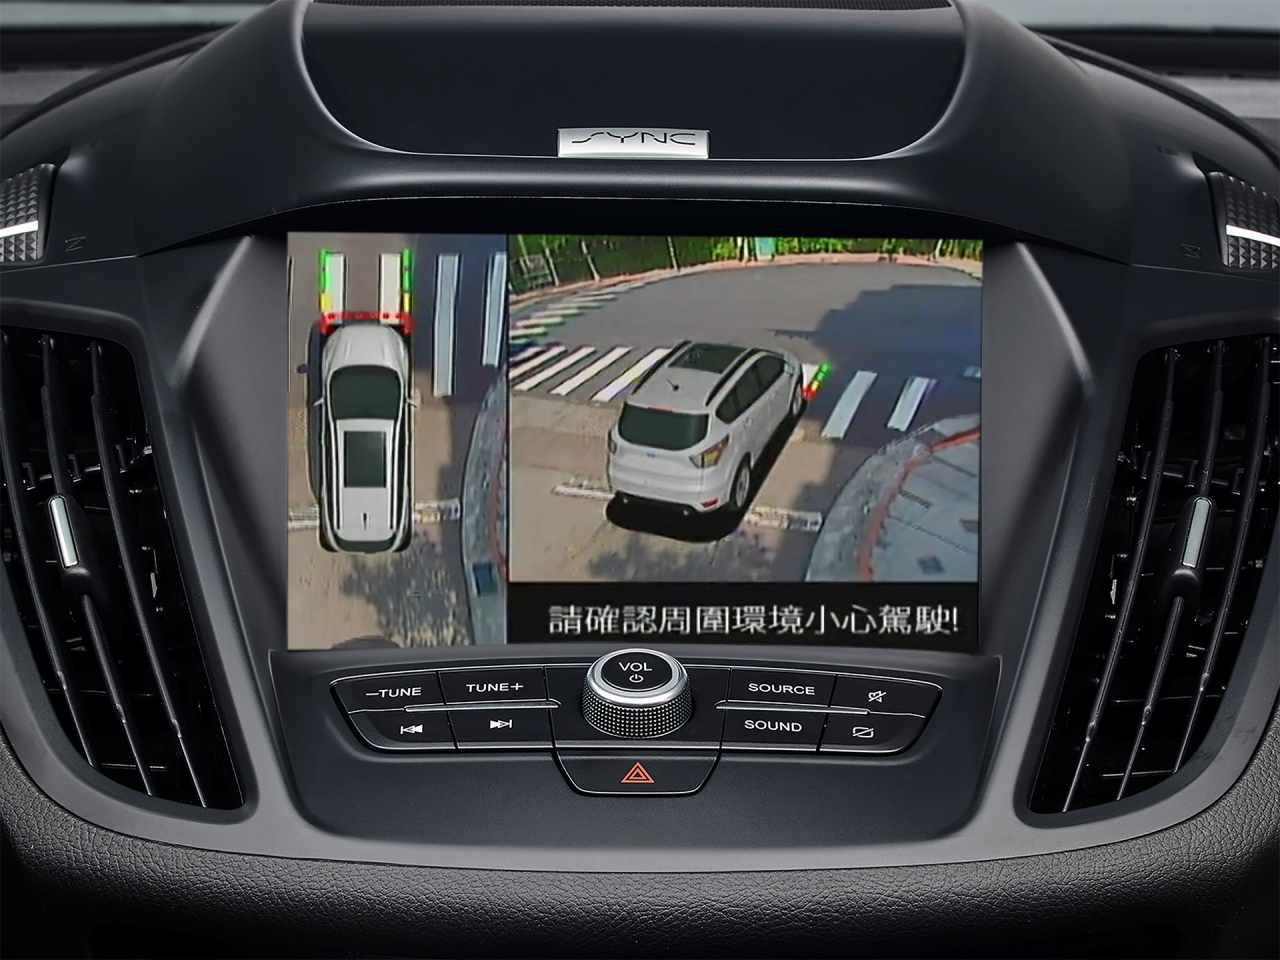 Ford Kuga EcoBoost®182 CP360 型搭載 360° 環景影像行車輔助系統。